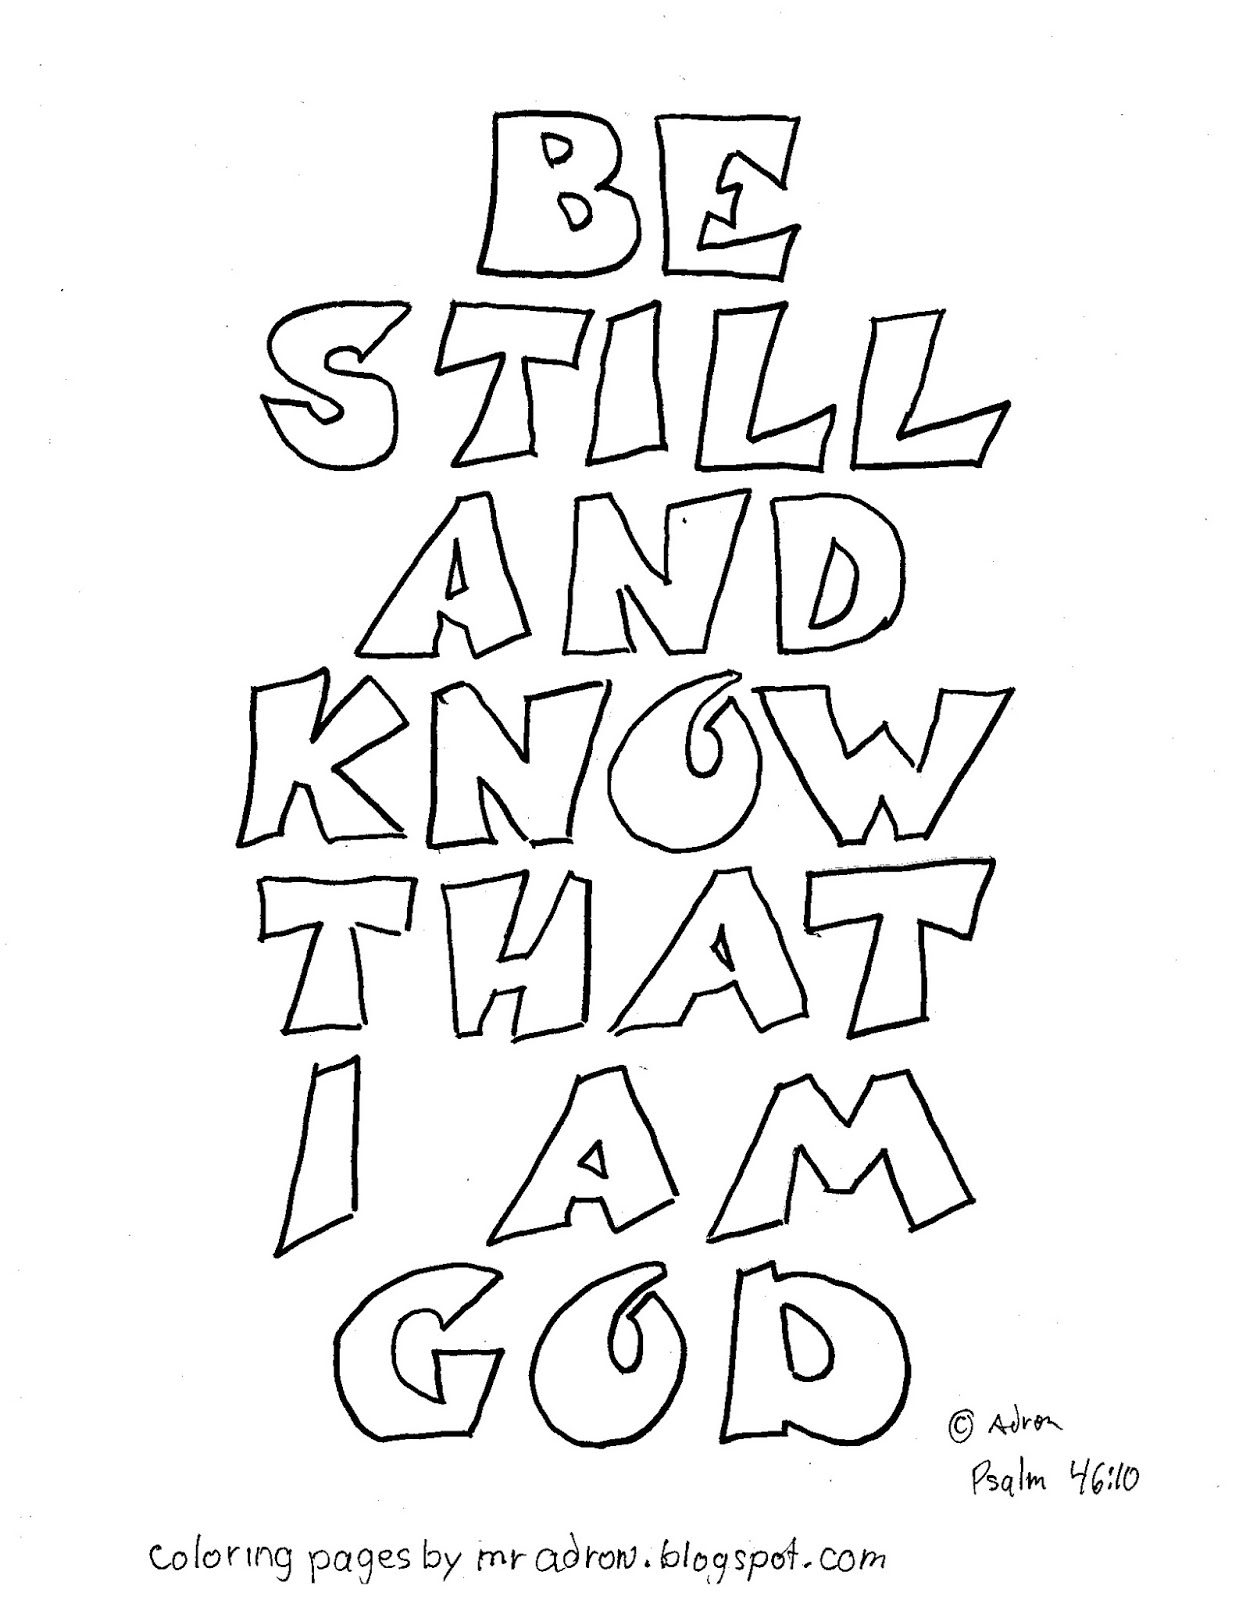 Free Psalm 4610 Coloring Pages